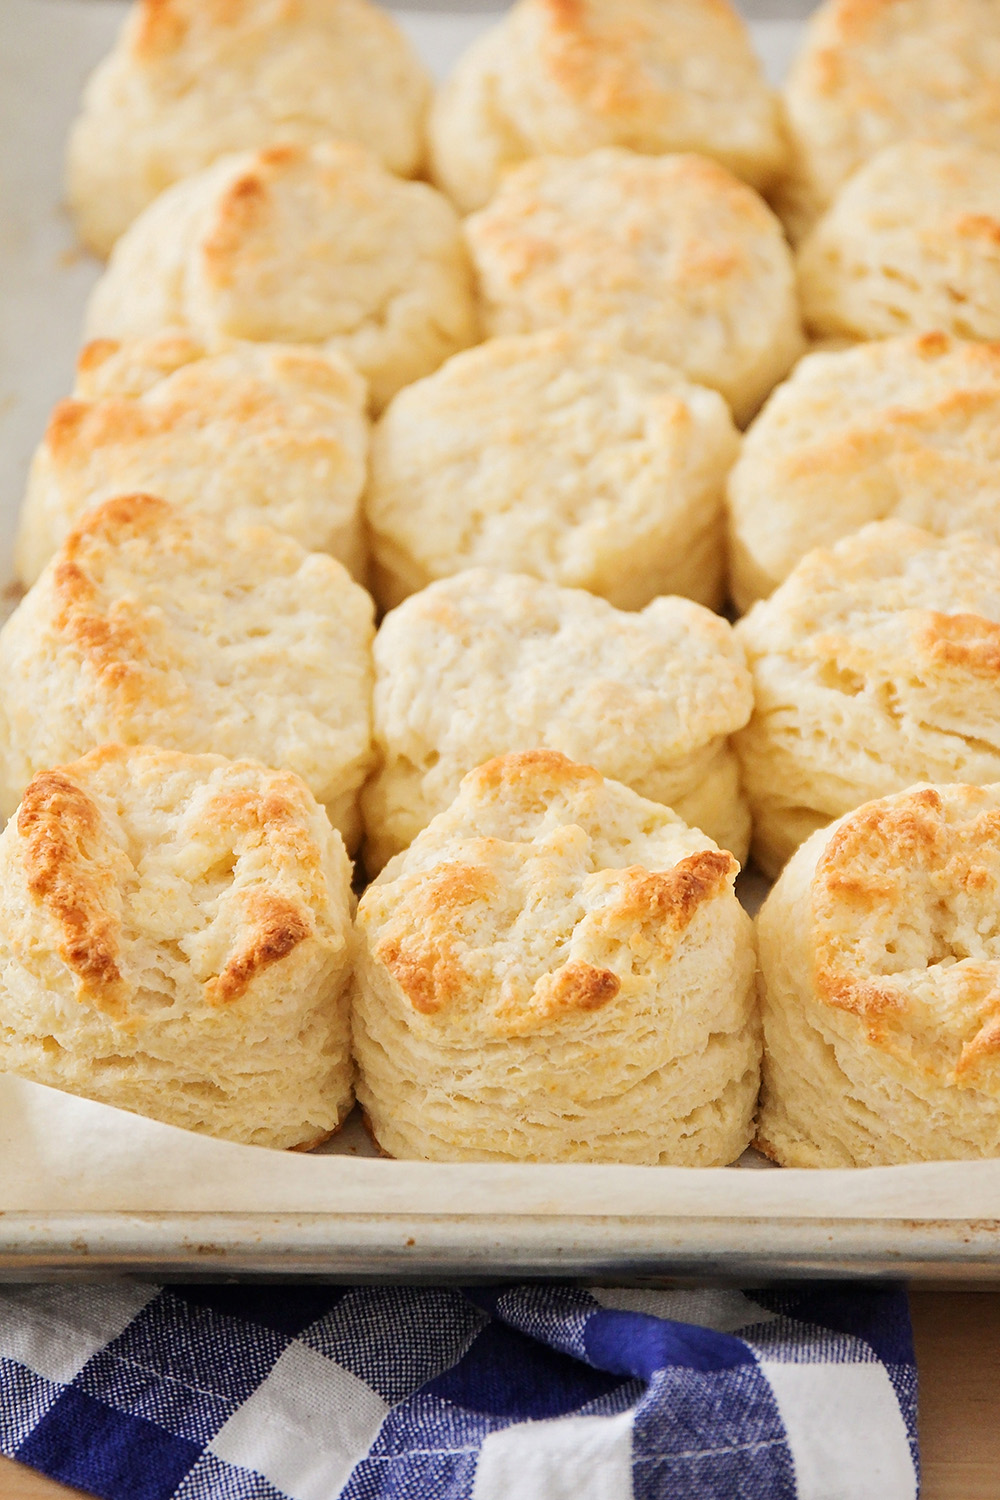 These flaky buttermilk biscuits are so tender and buttery, and perfectly delicious!